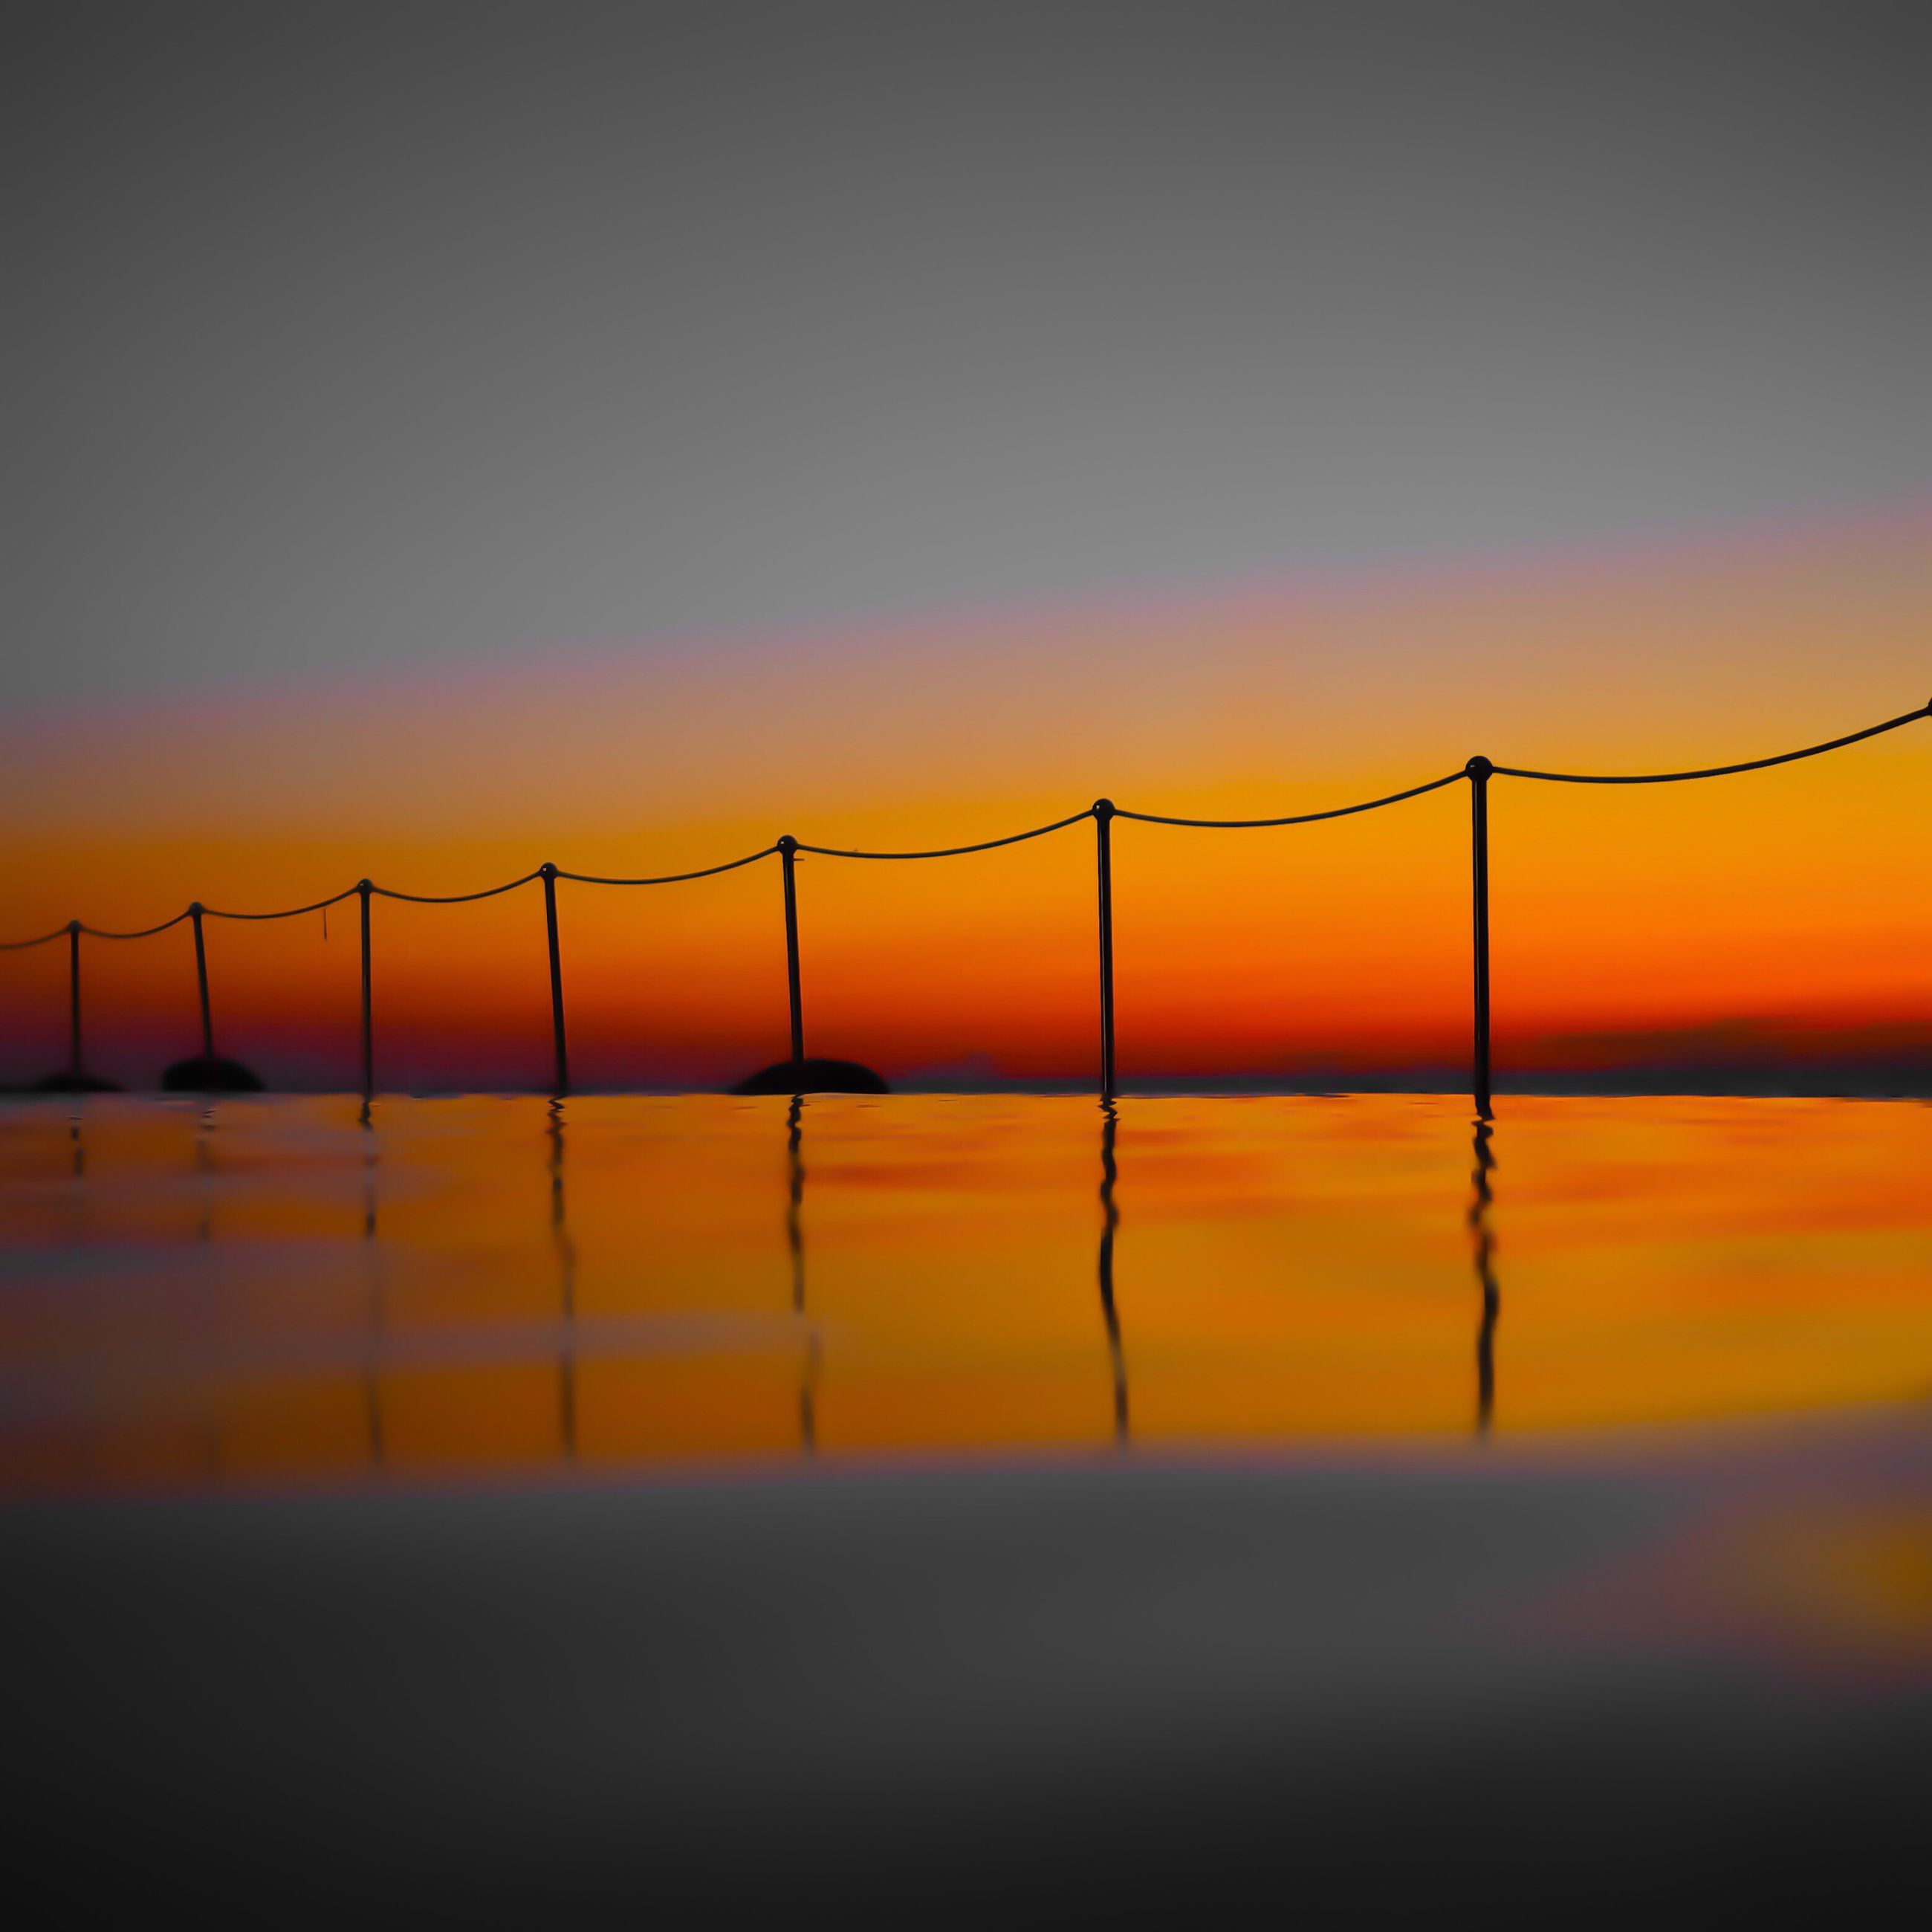 sunset, orange color, nature, beauty in nature, water, no people, bridge - man made structure, connection, sky, sea, suspension bridge, silhouette, outdoors, scenics